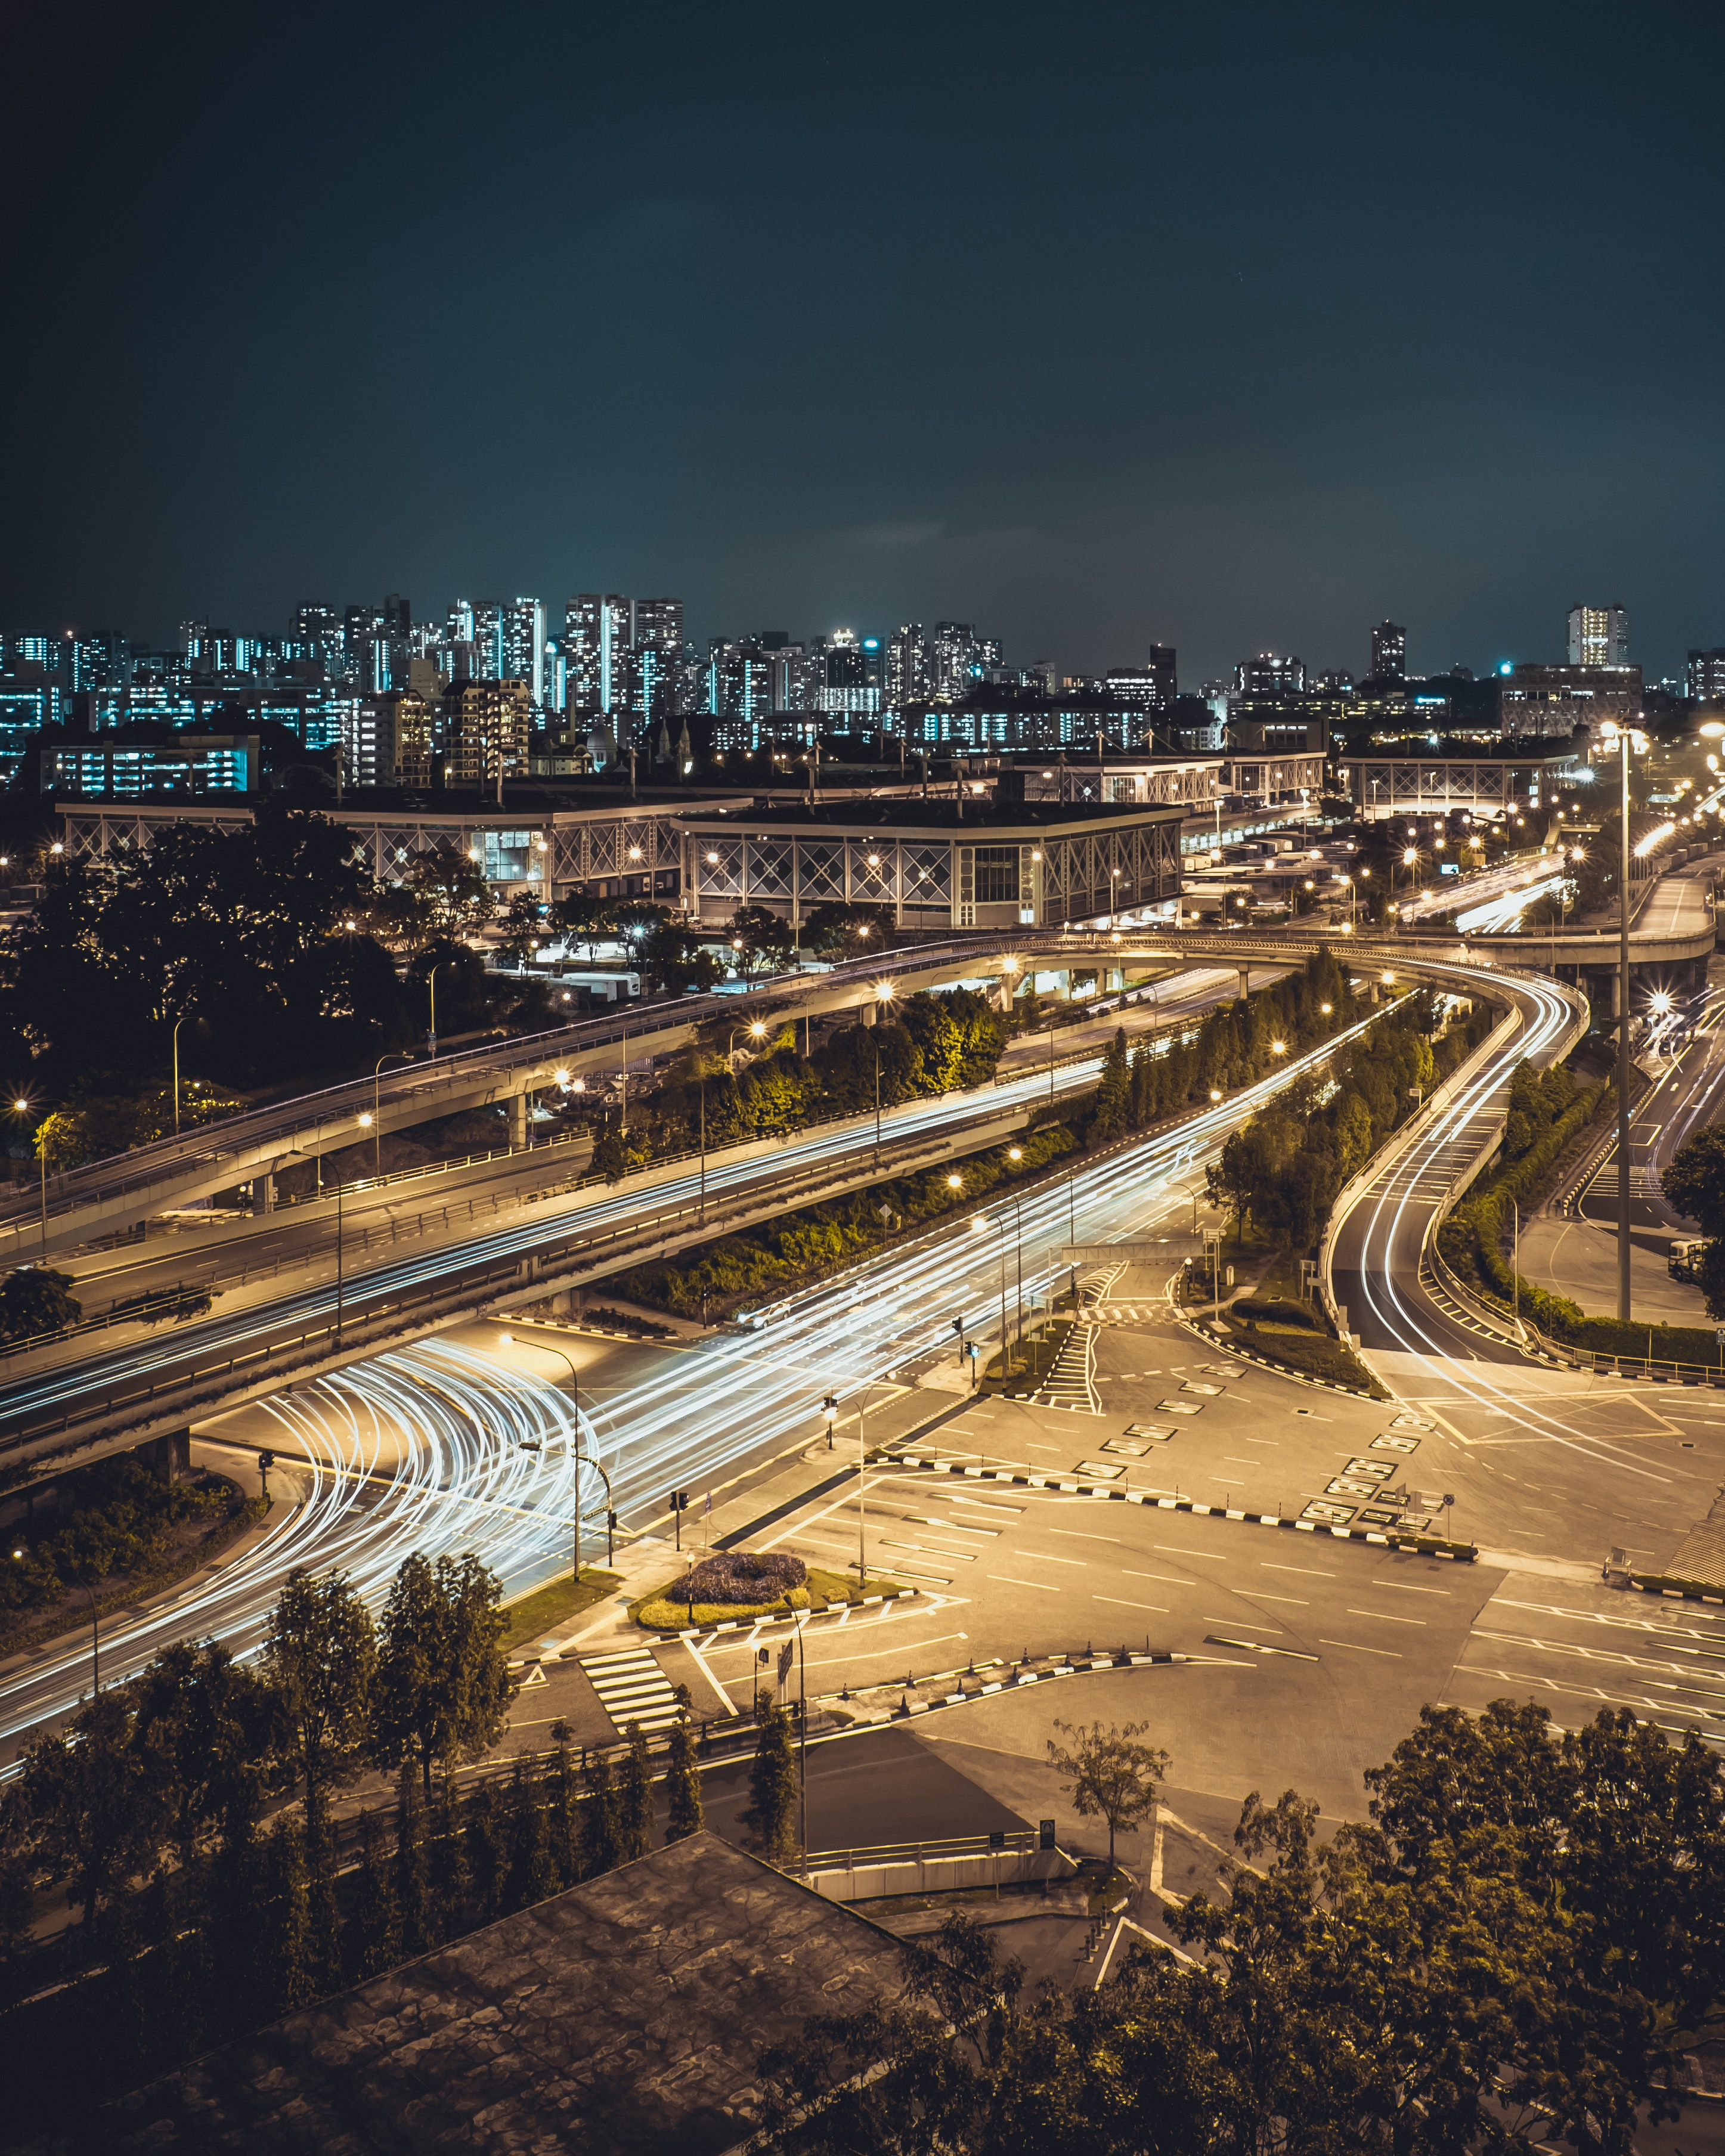 Bright light trails on streets leading to a large city